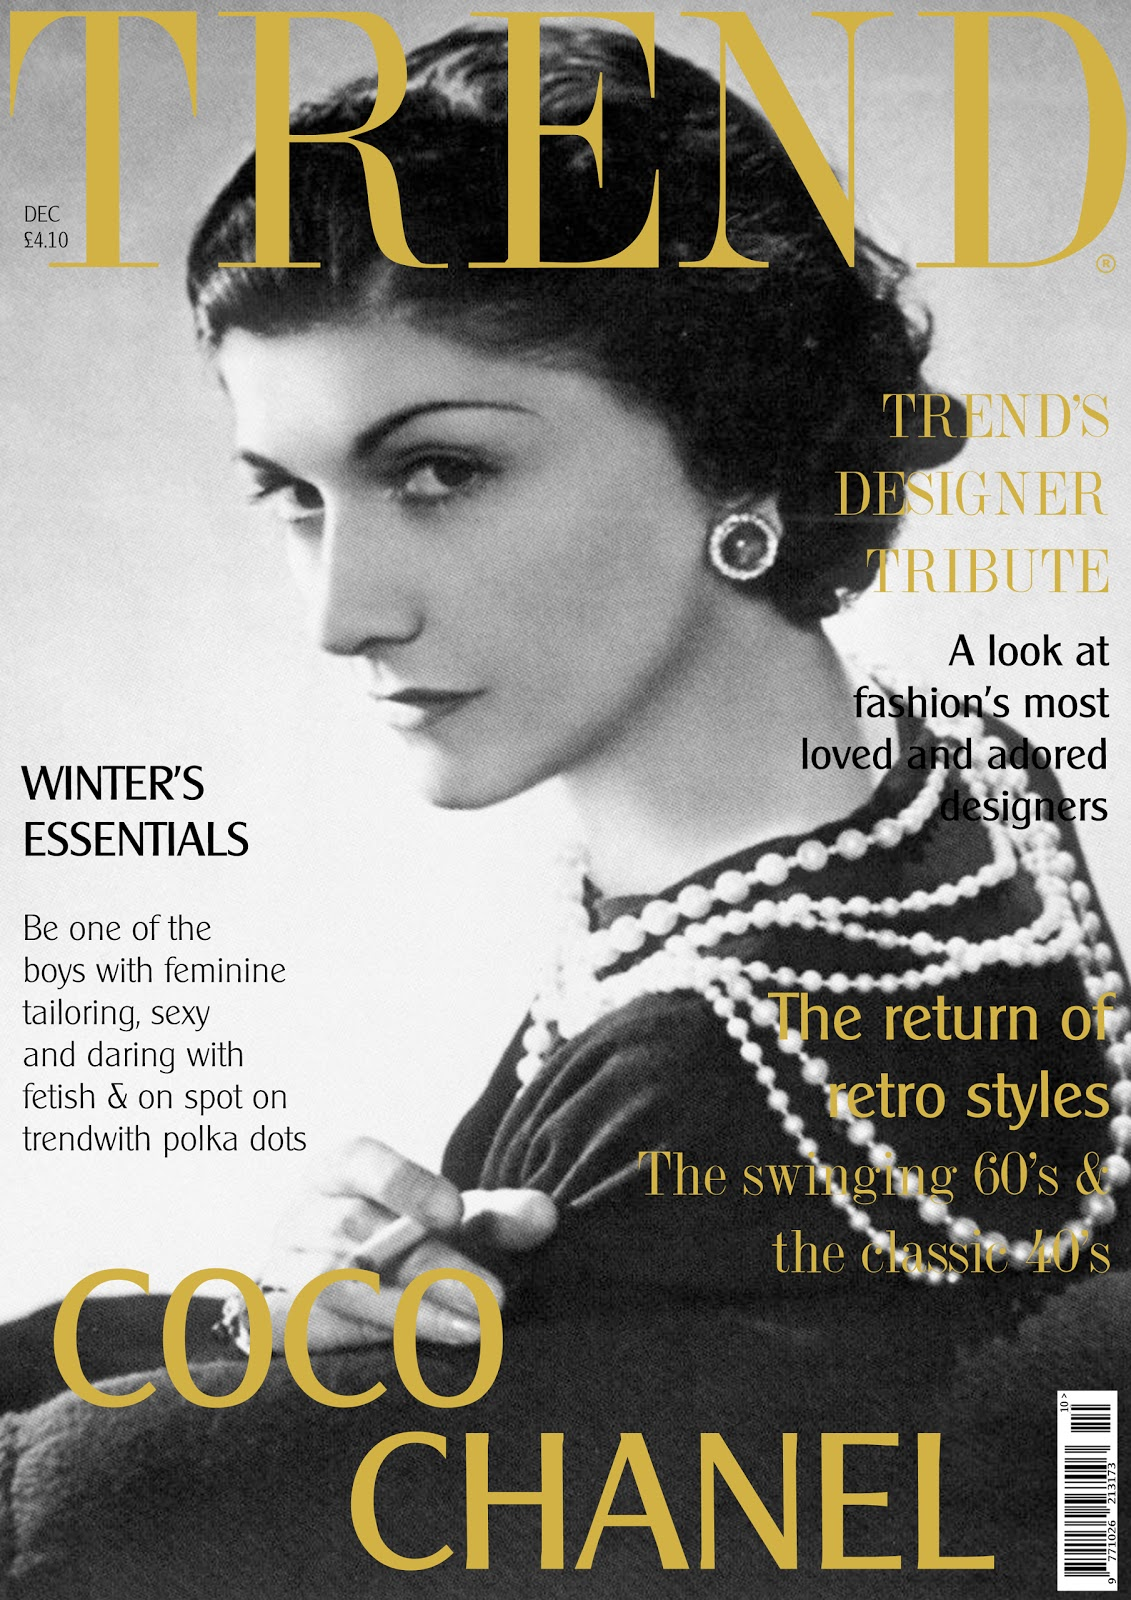 TREND: December 2011: Cover Story: Coco Chanel